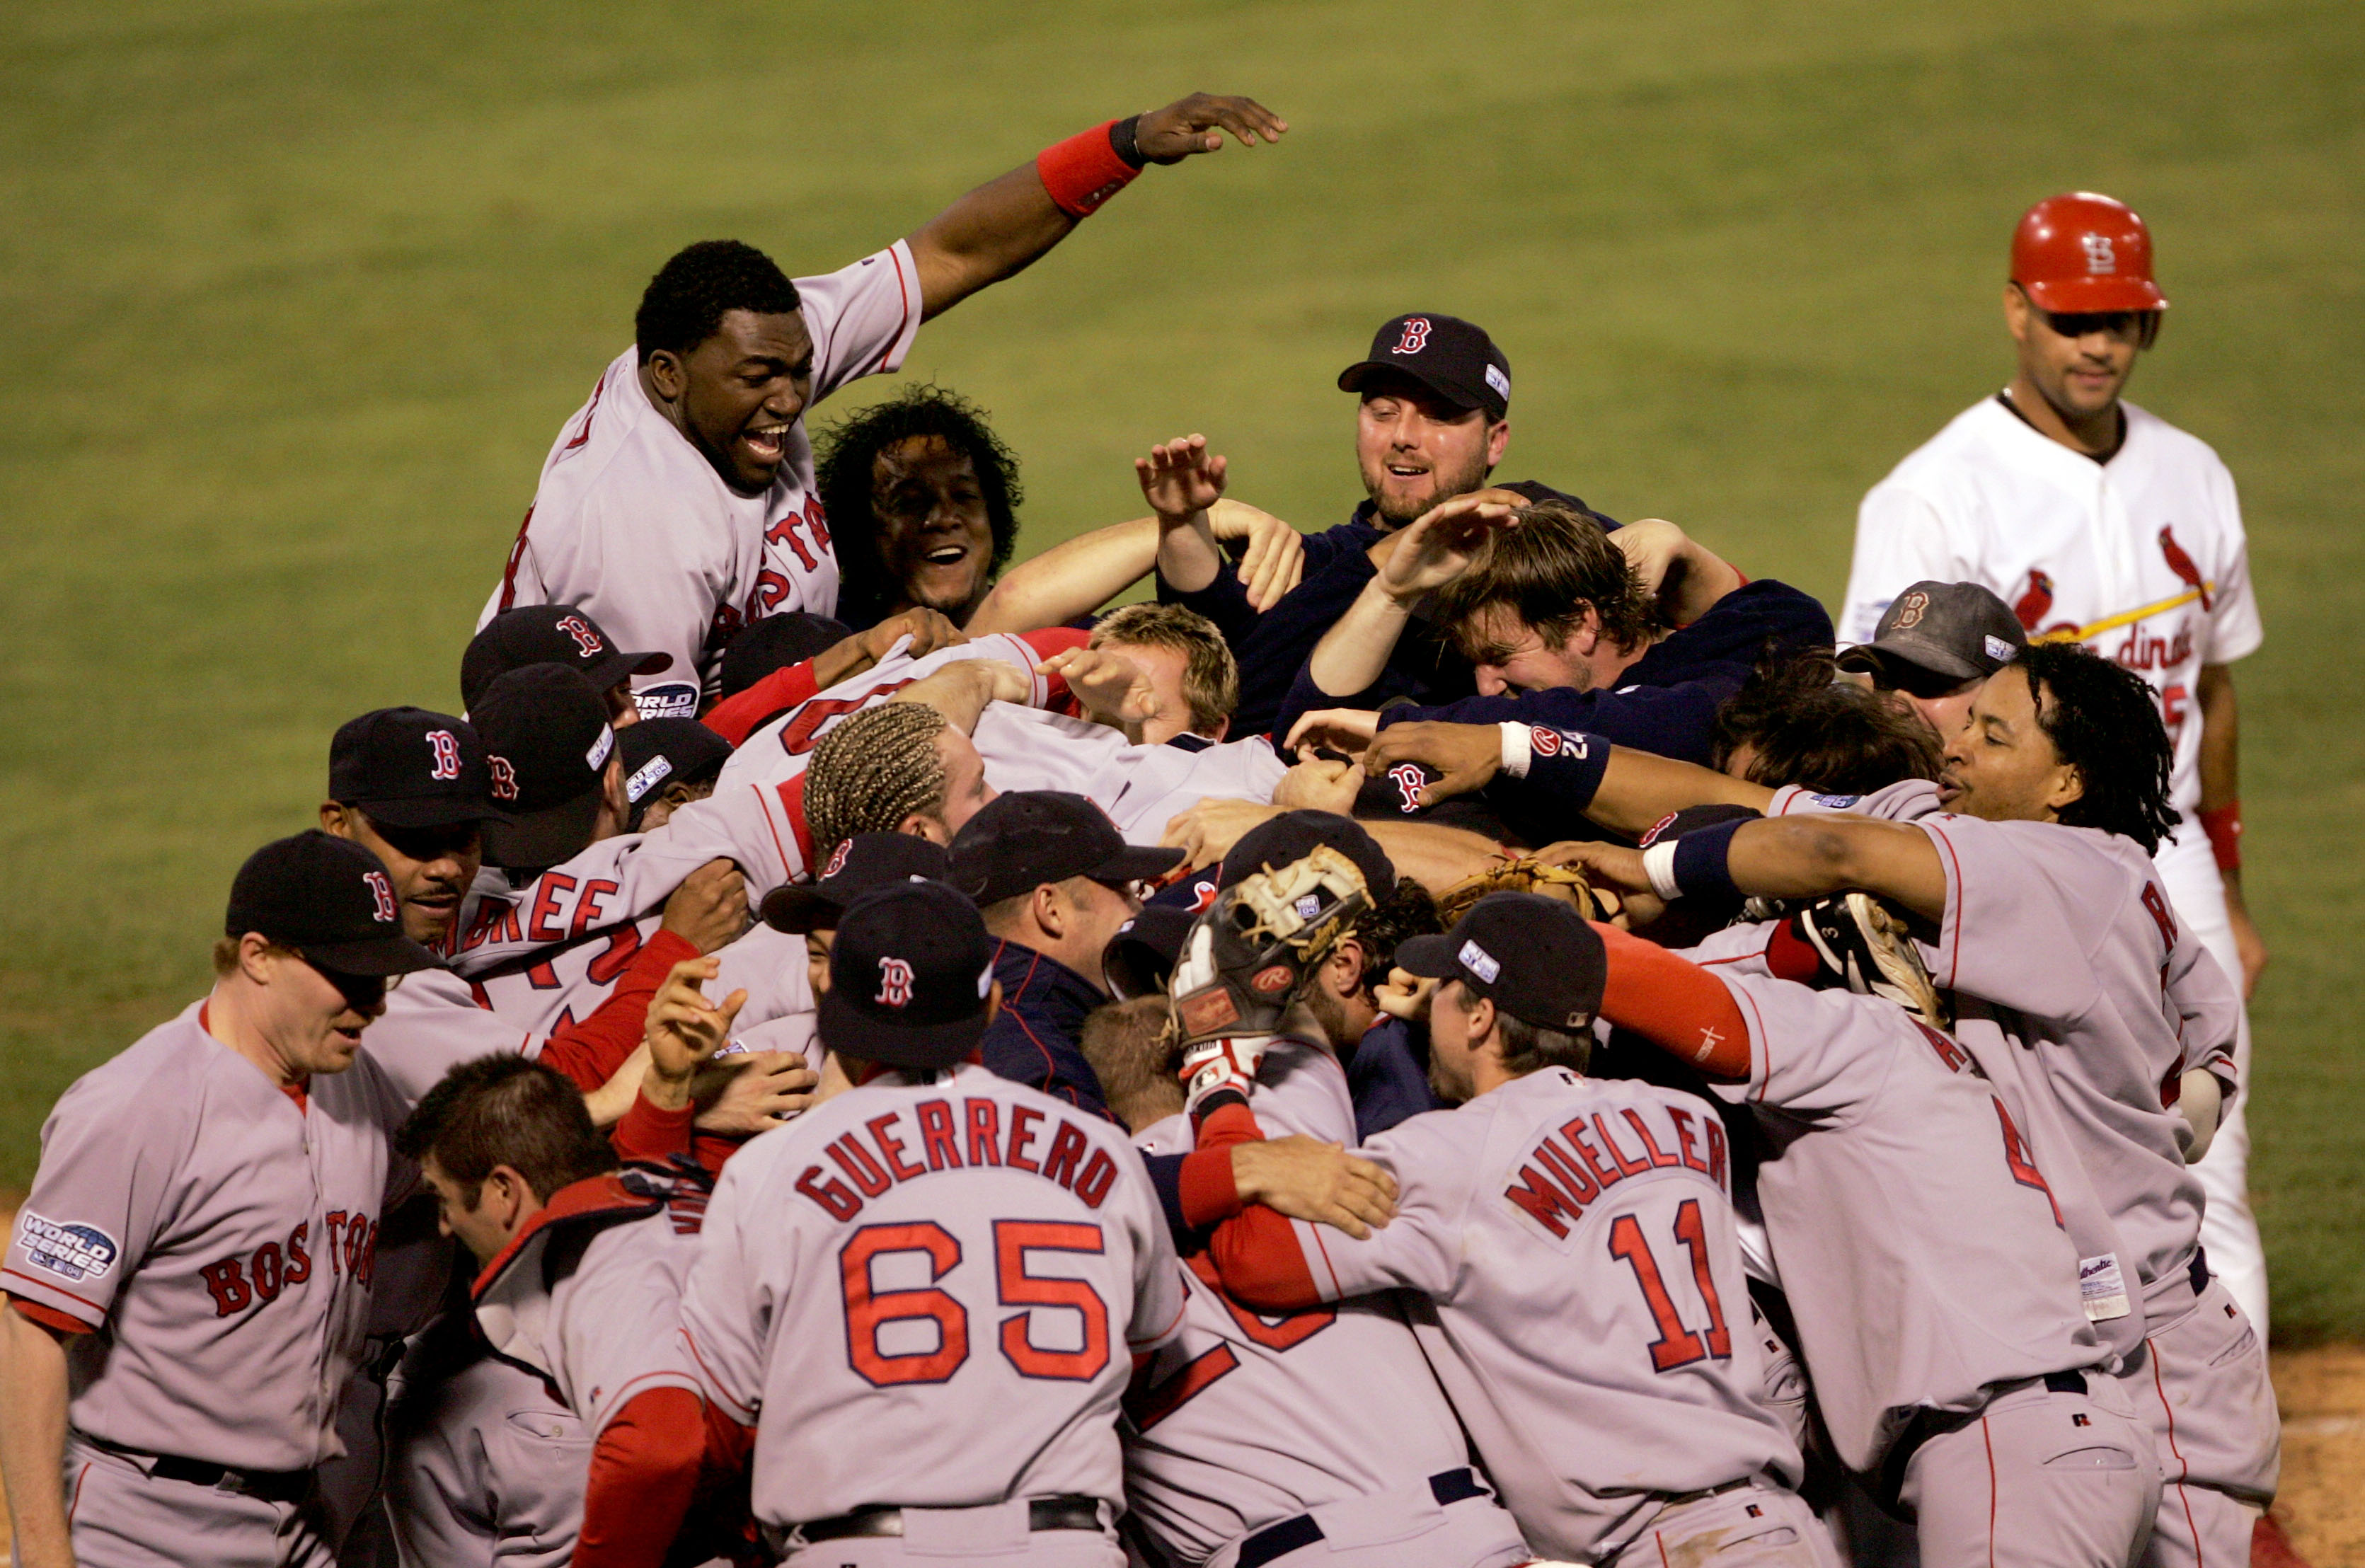 ST LOUIS - OCTOBER 27:  The Boston Red Sox celebrate after defeating the St. Louis Cardinals 3-0 to win game four of the World Series on October 27, 2004 at Busch Stadium in St. Louis, Missouri.  (Photo by Stephen Dunn/Getty Images)